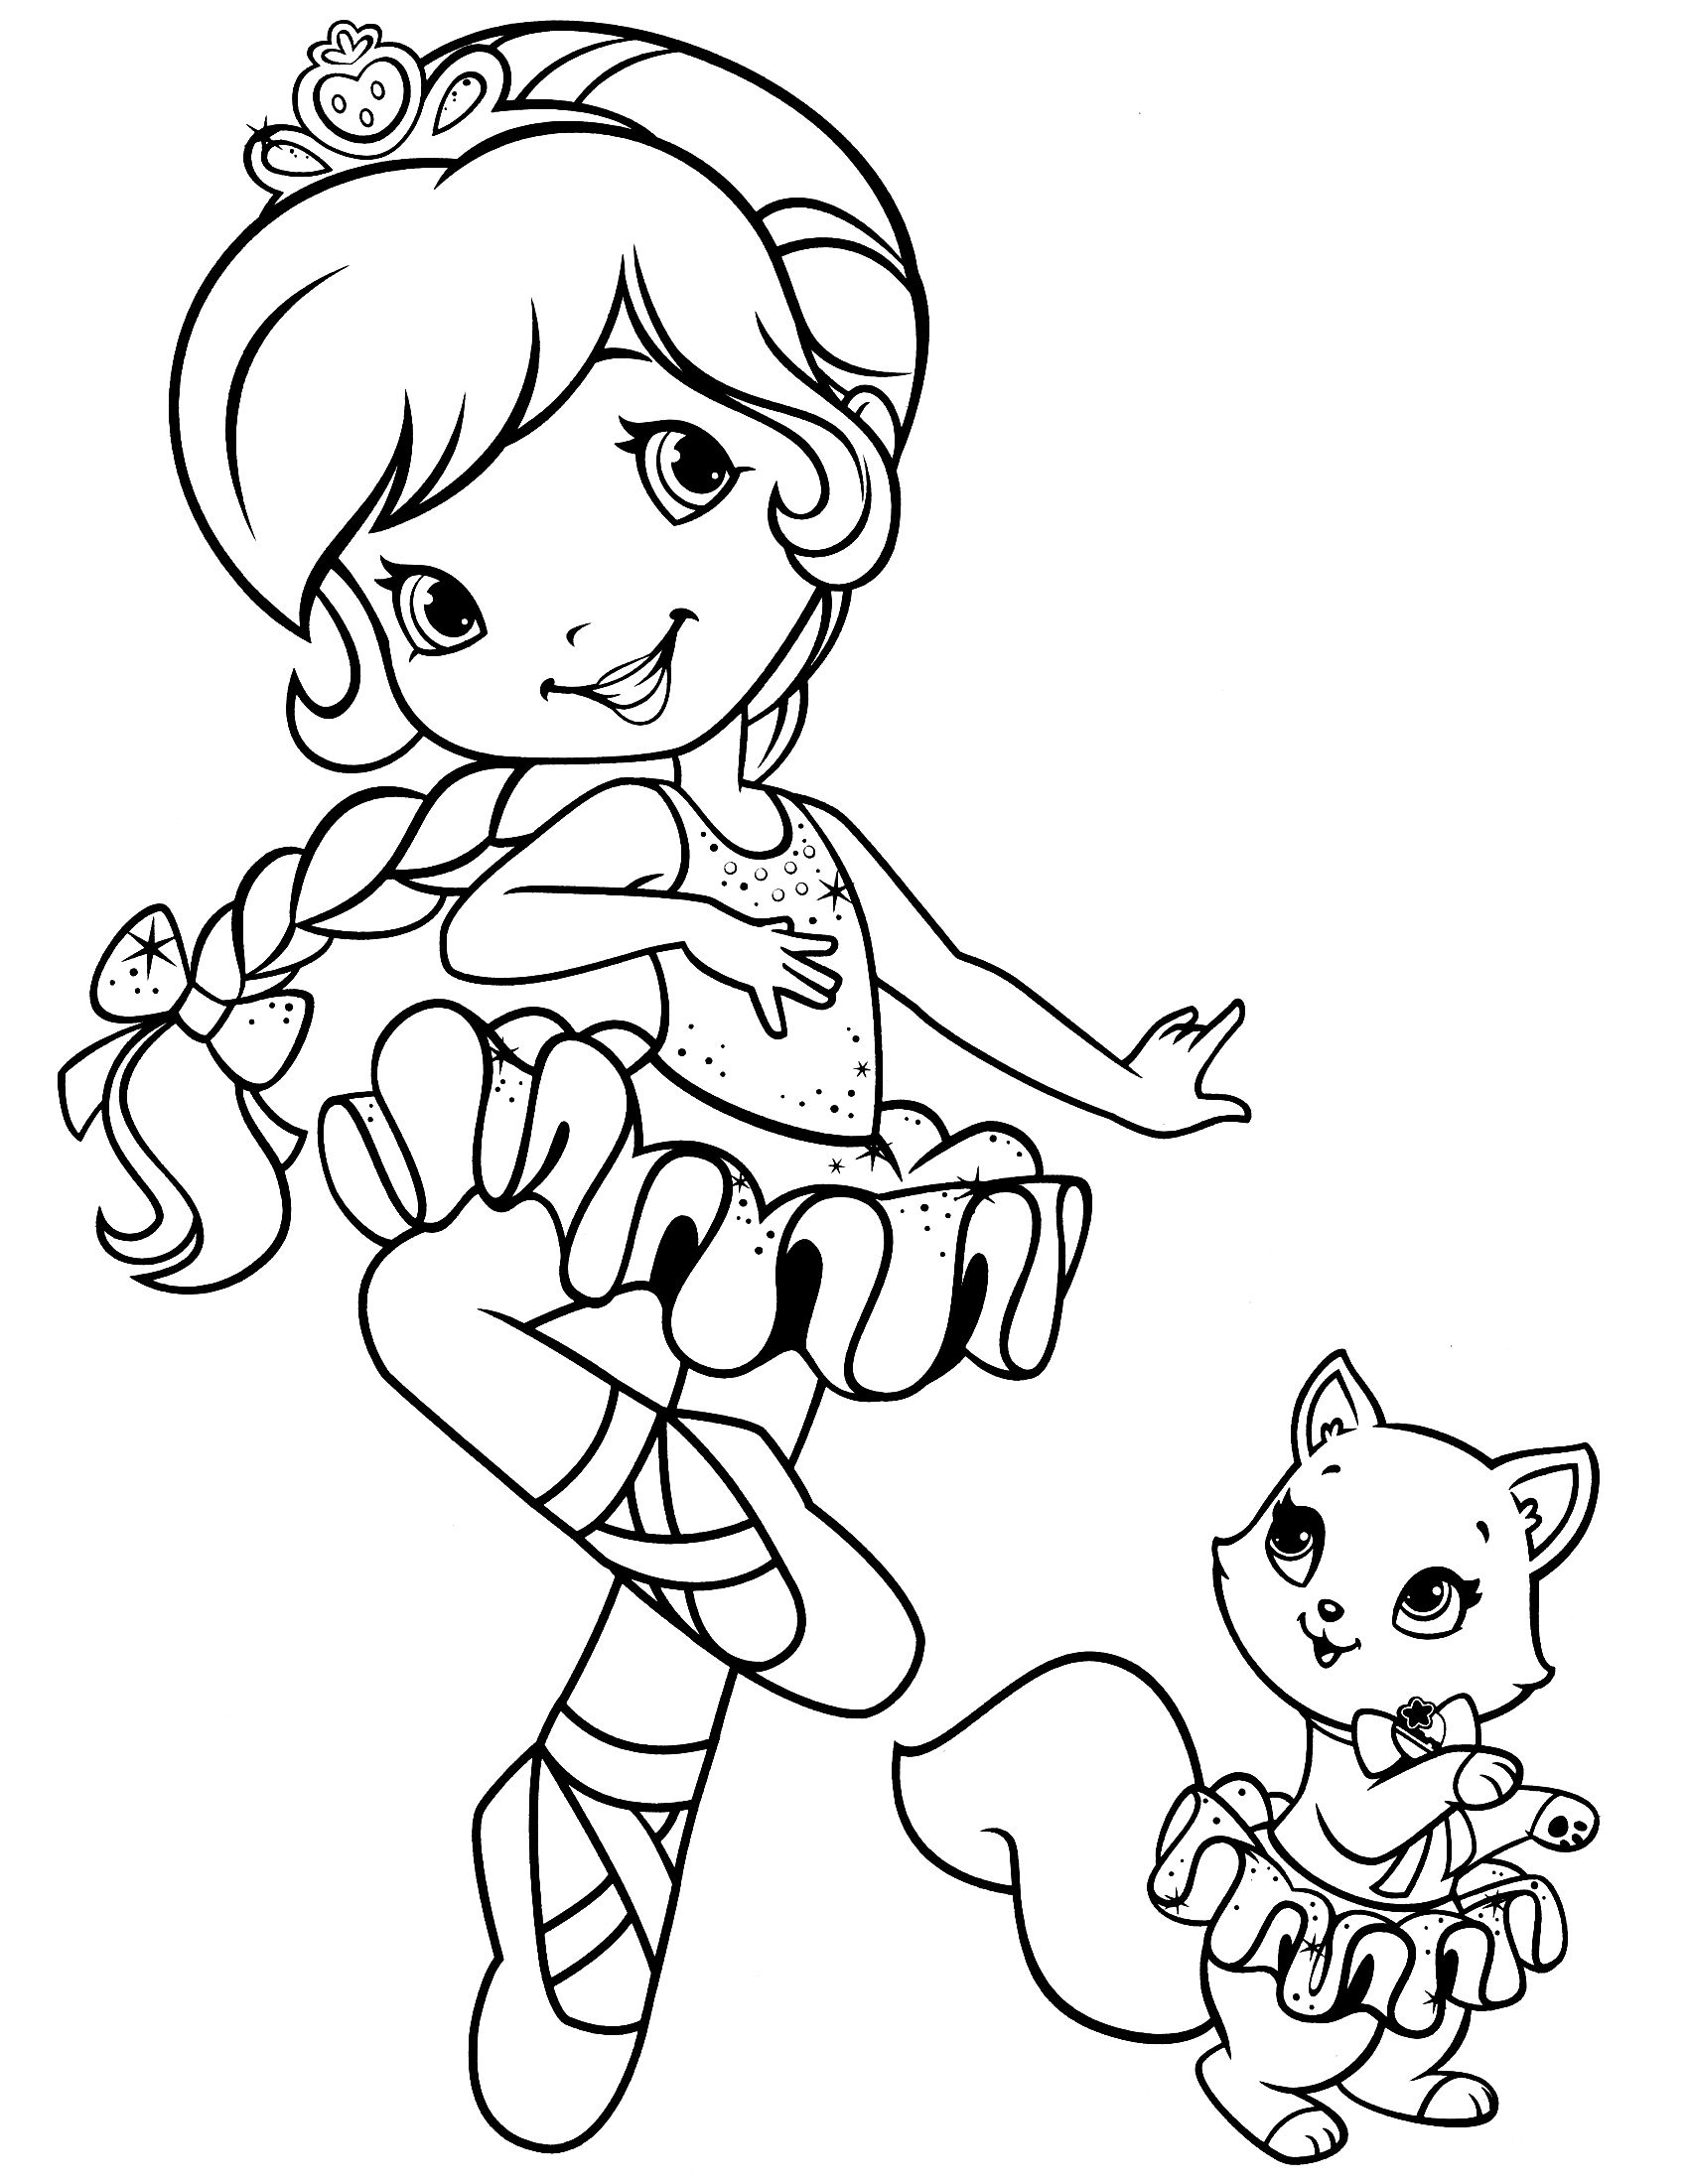 strawberry shortcake coloring page eboş Pinterest